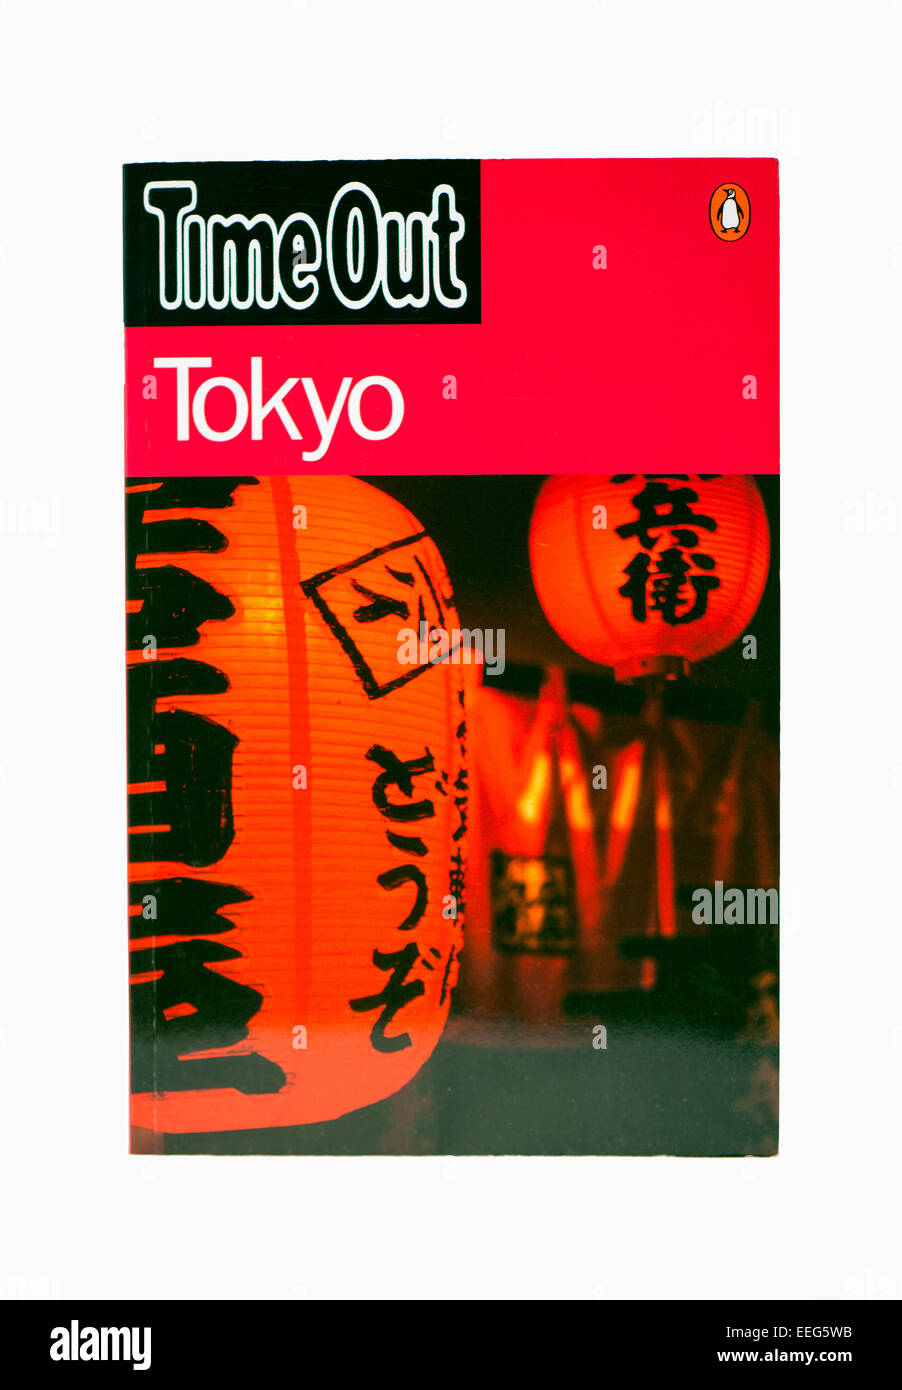 Tokyo Time Out Travel Guide Stock Photo